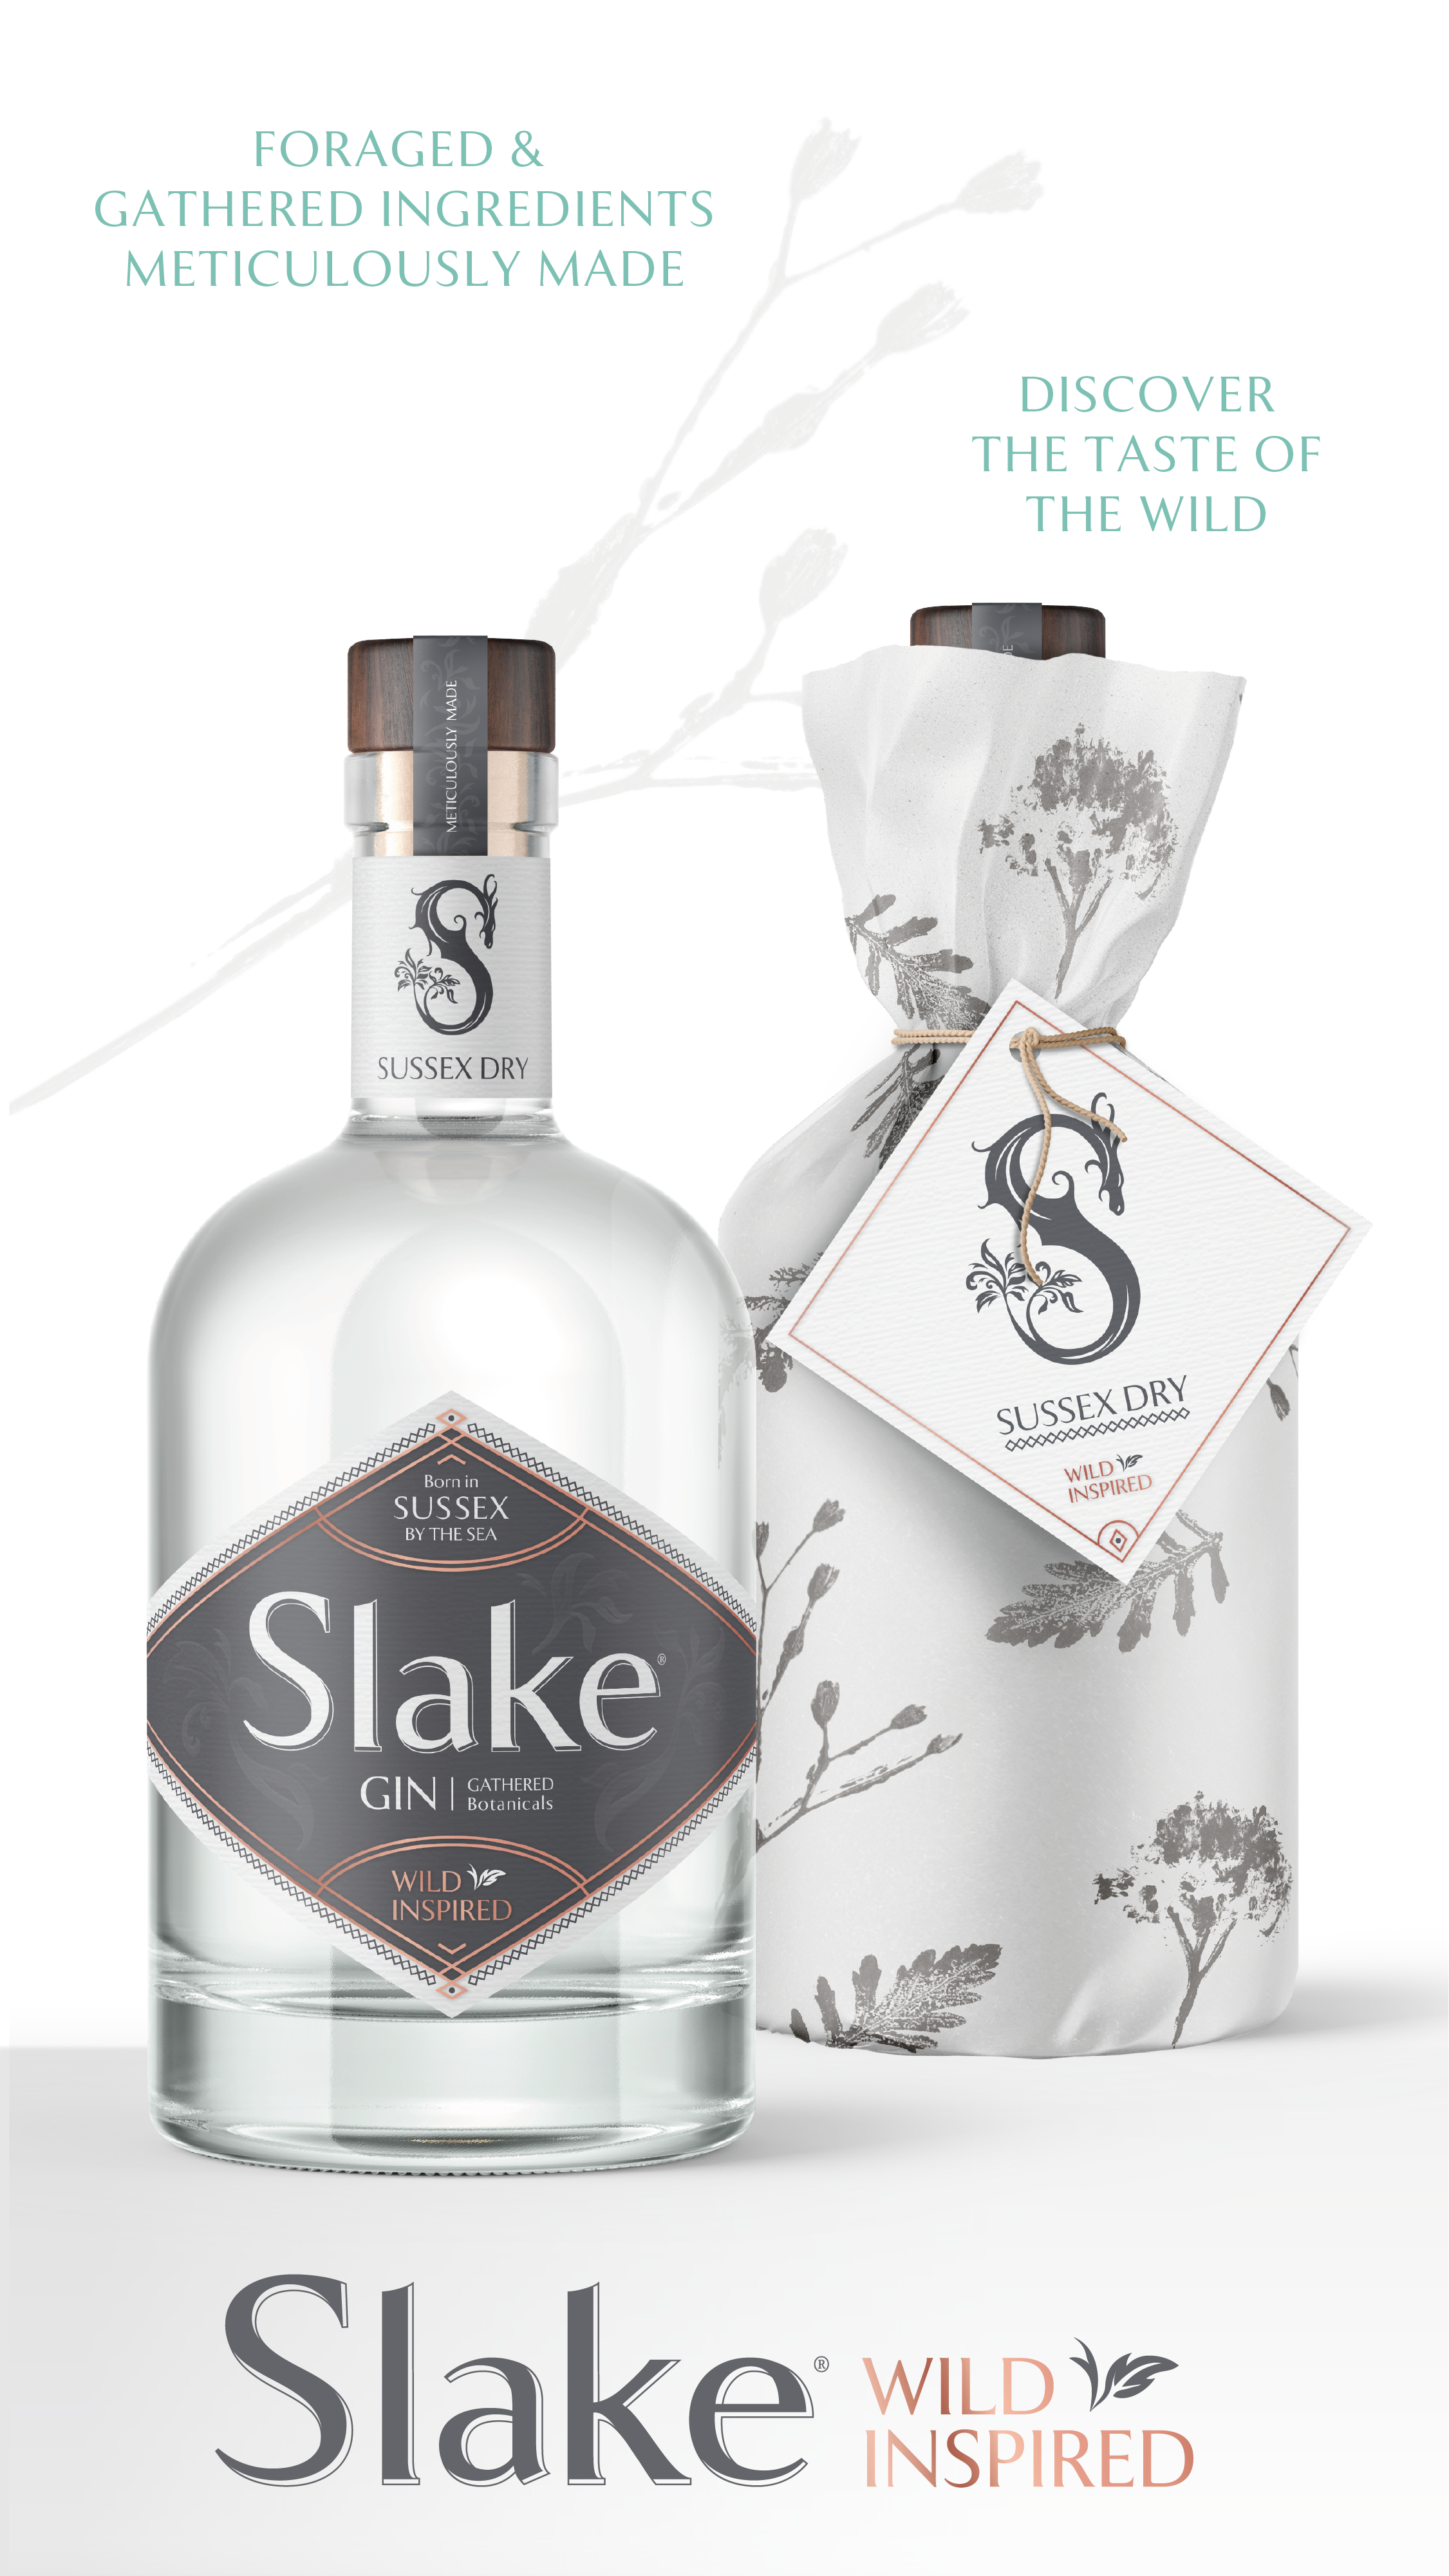 Slake Spirits Sussex Dry Gin bottles wrapped and unwrapped with aromatic botanical print